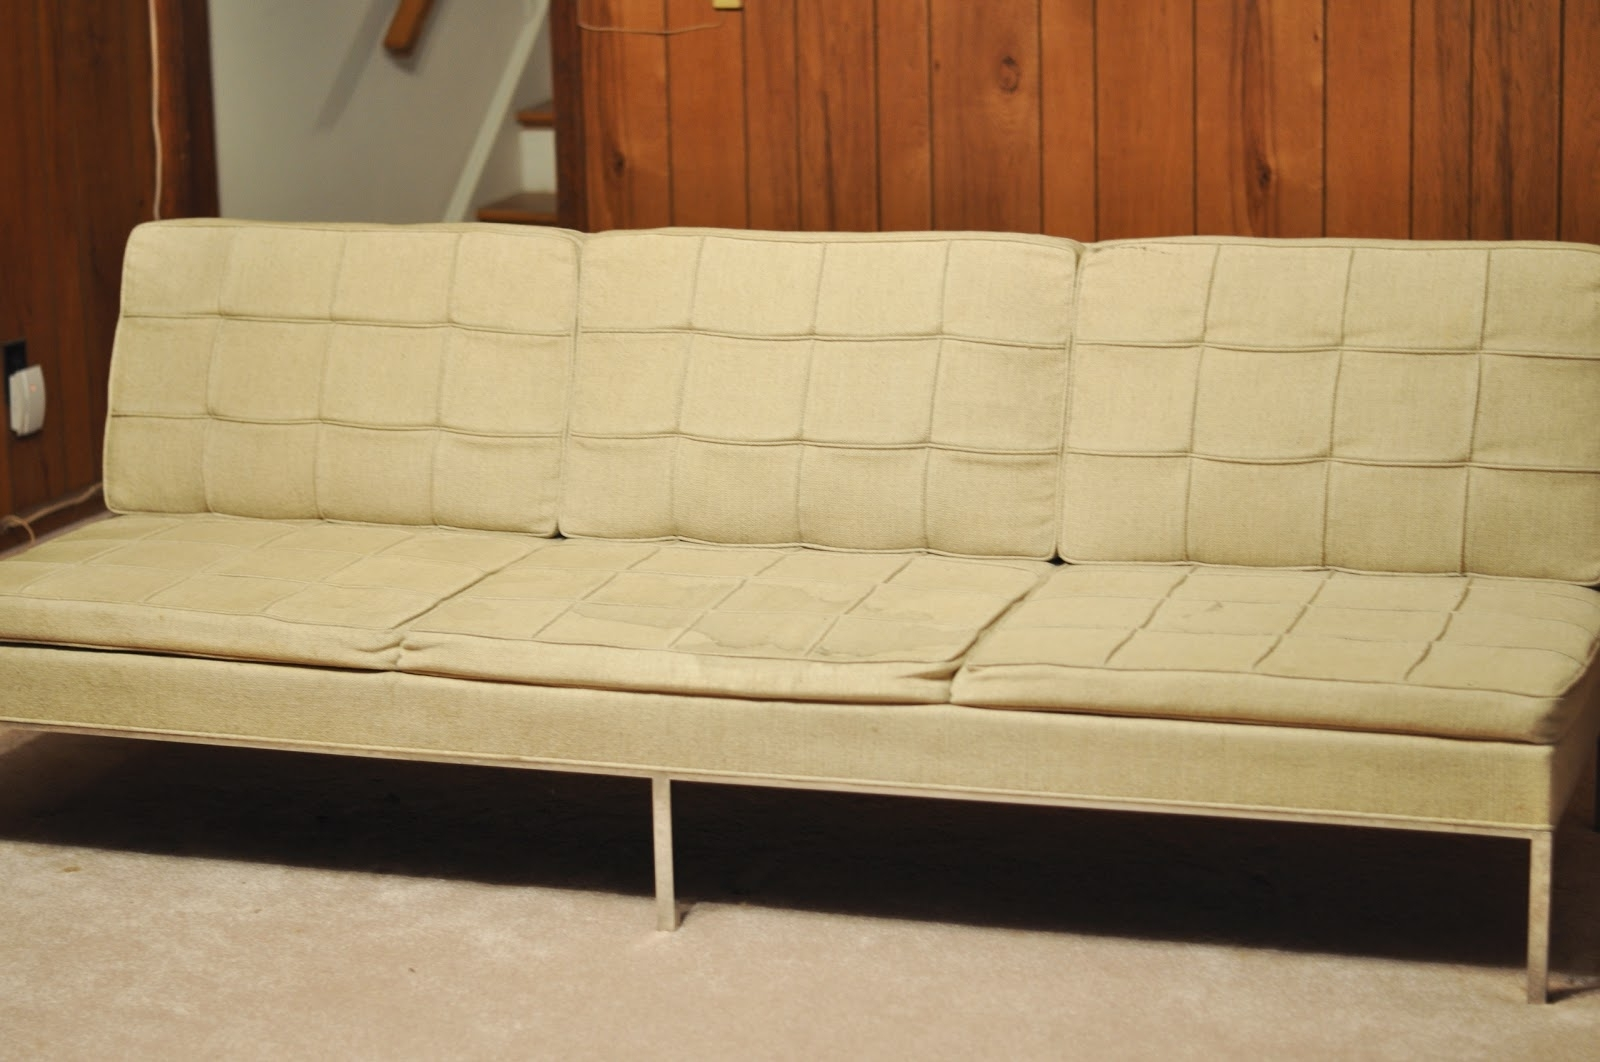 A Treasure In Storage: The Florence Knoll Sofa Comes Home Pertaining To Most Popular Florence Knoll Fabric Sofas (View 3 of 20)